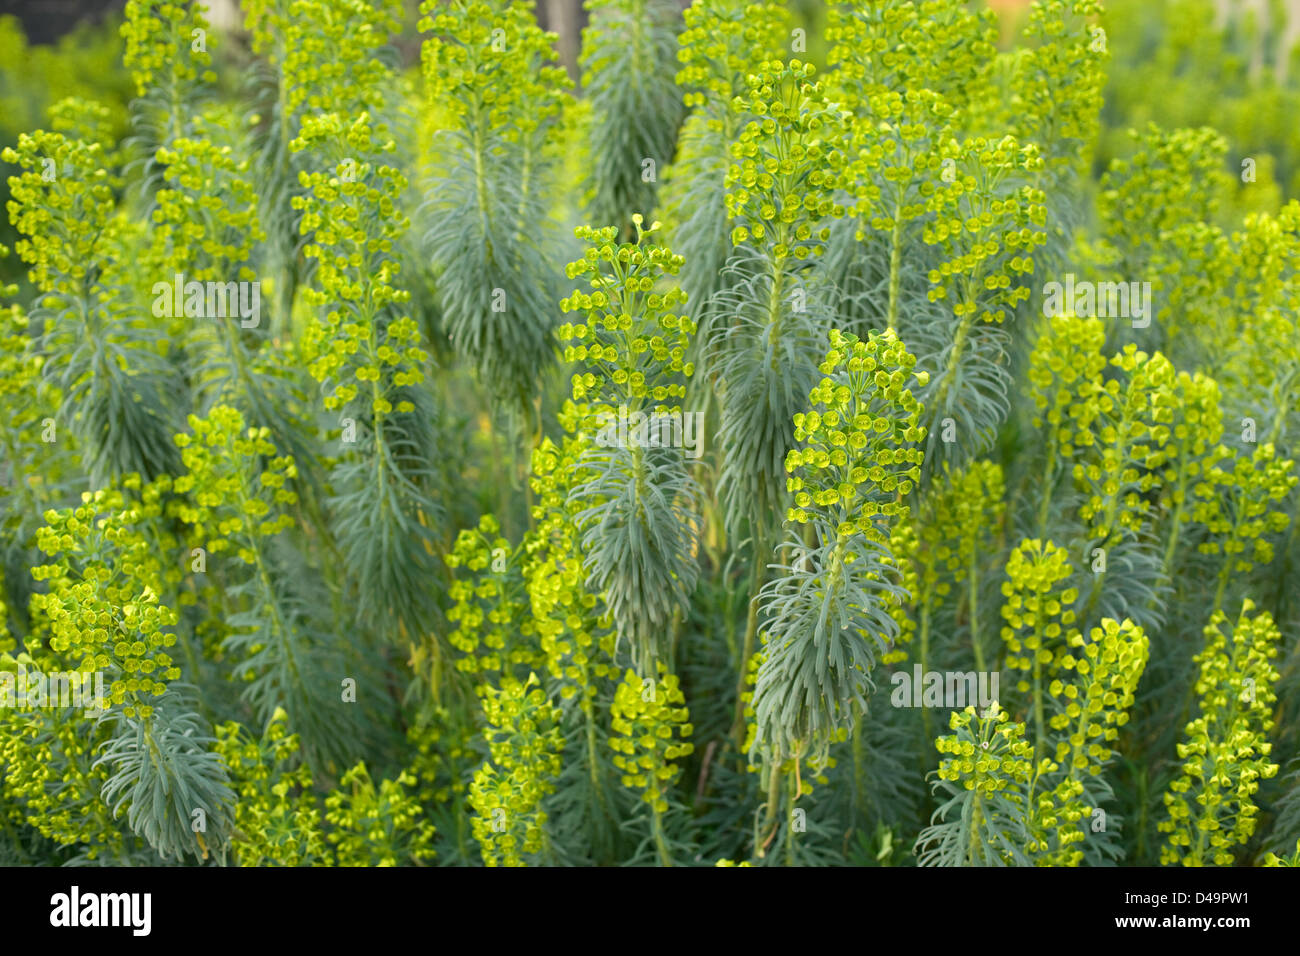 A Bush Of Yellow Desert Flowers In Bloom Stock Photo 54305245 Alamy